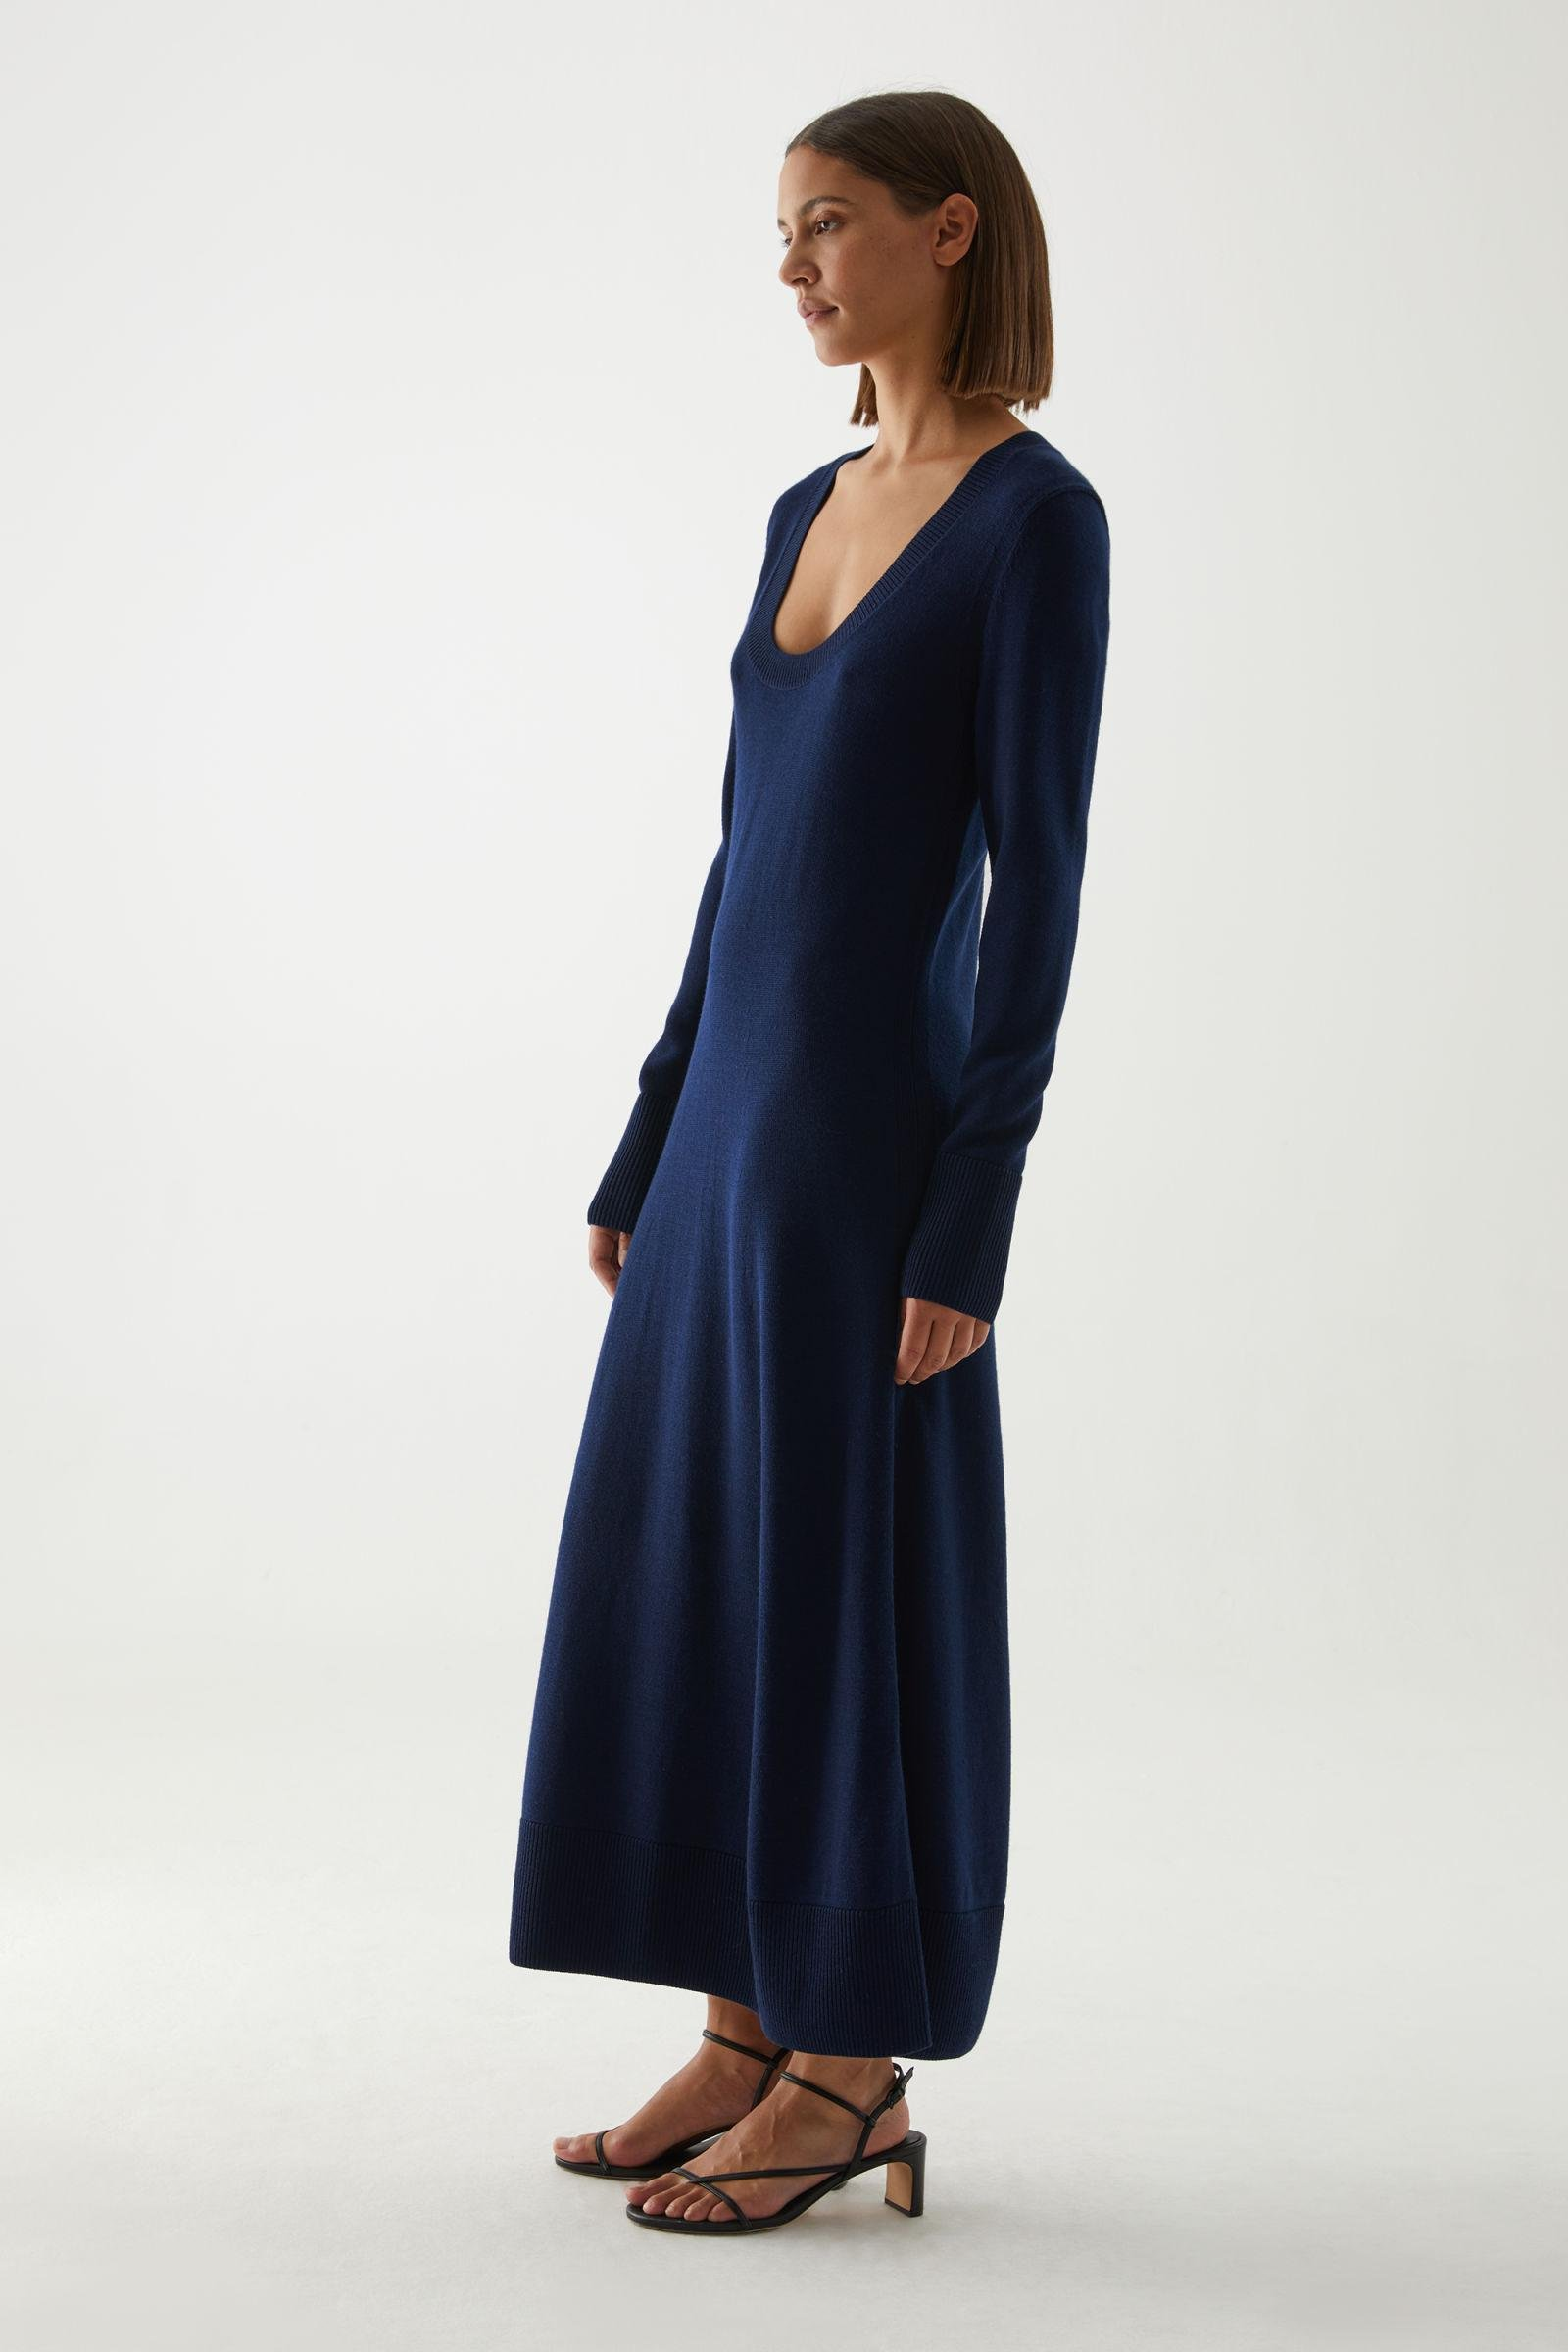 A-LINE LONG SLEEVE KNITTED DRESS